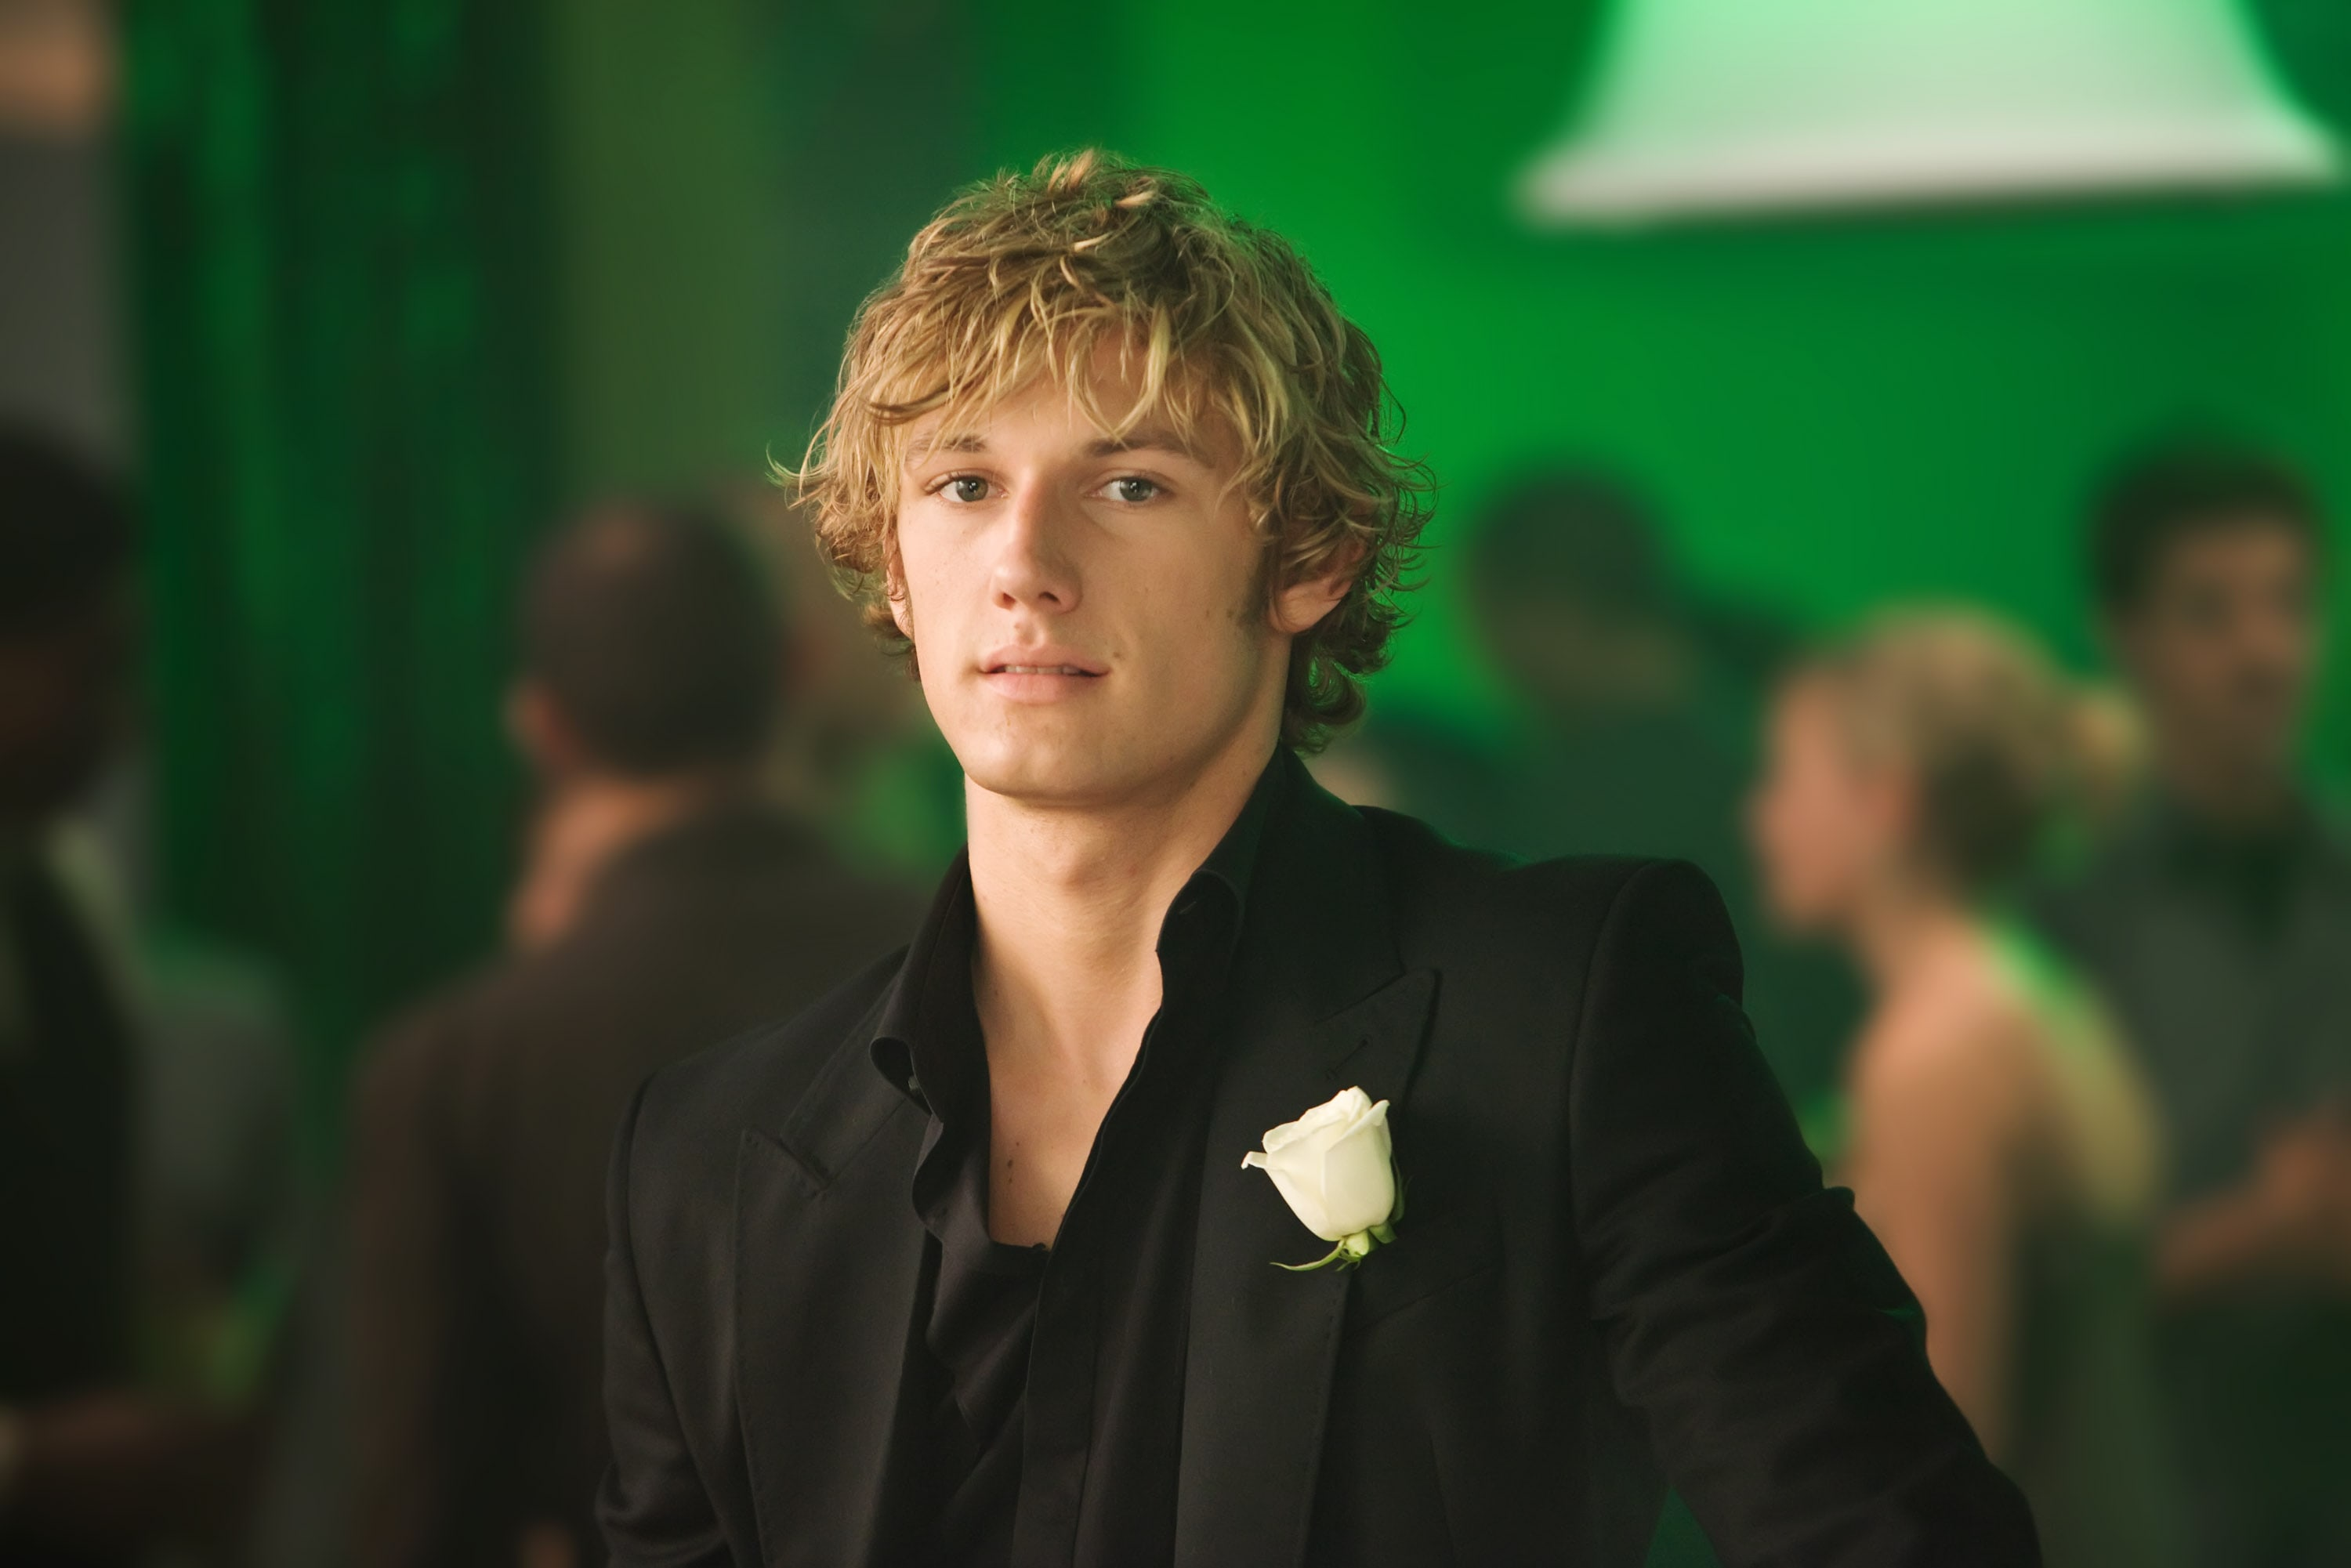 Alex Pettyfer Widescreen